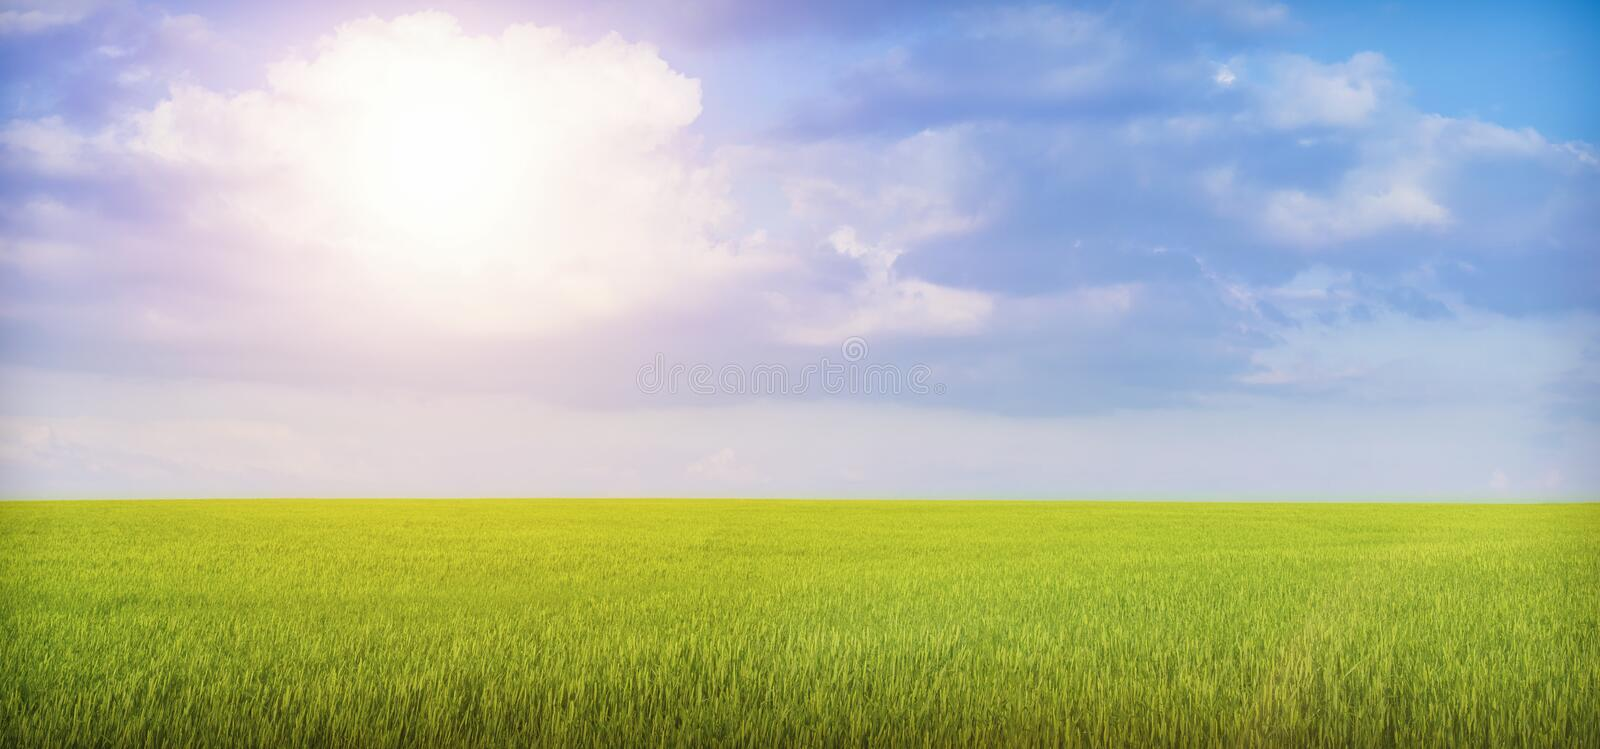 Beautiful summer landscape of nature. Blue sky, grass, wheat and bright sun. Beautiful summer landscape of nature. Blue sky, grass, wheat and bright sun royalty free stock images